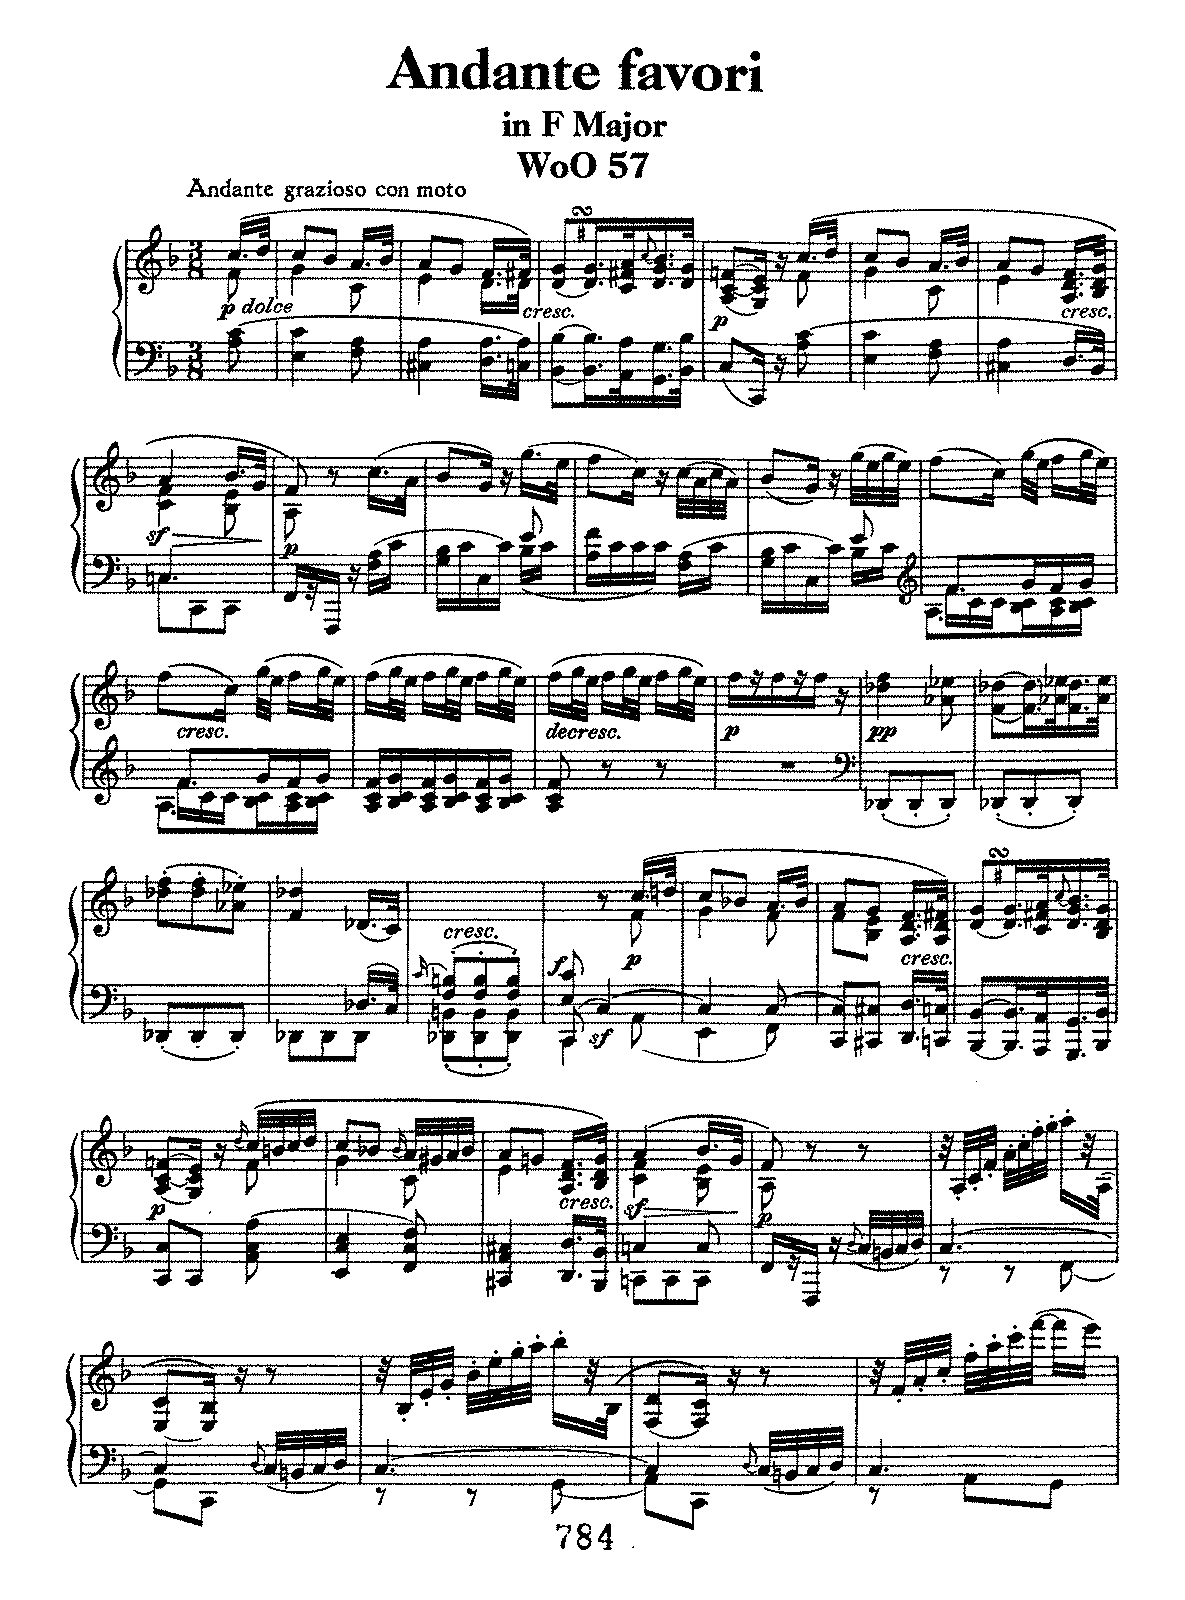 Beethoven woo57 Andante favori in F.pdf